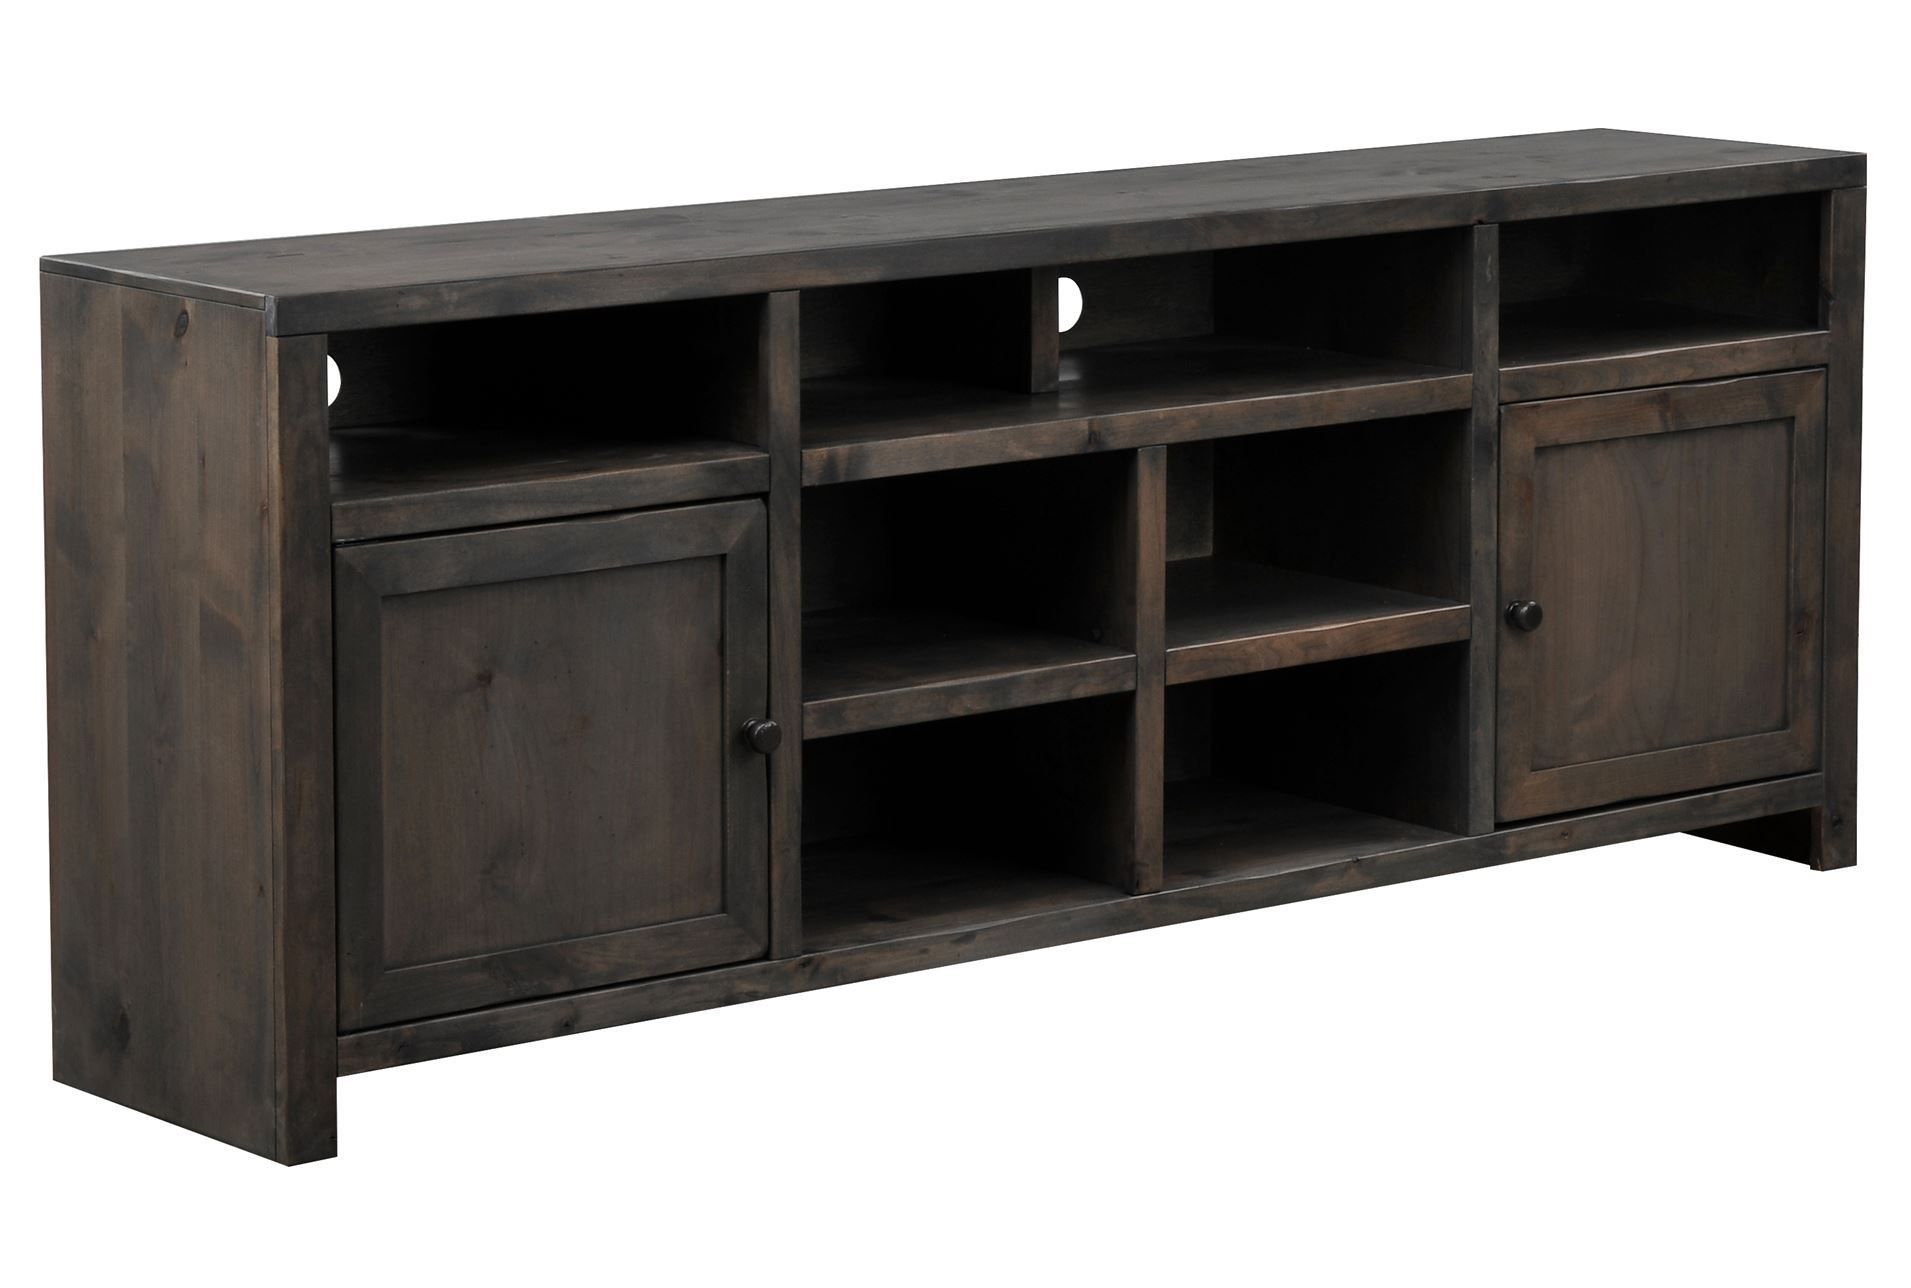 Ducar 84 Inch Tv Stand | Where The Heart Is | Pinterest | Family within Jaxon 65 Inch Tv Stands (Image 11 of 30)